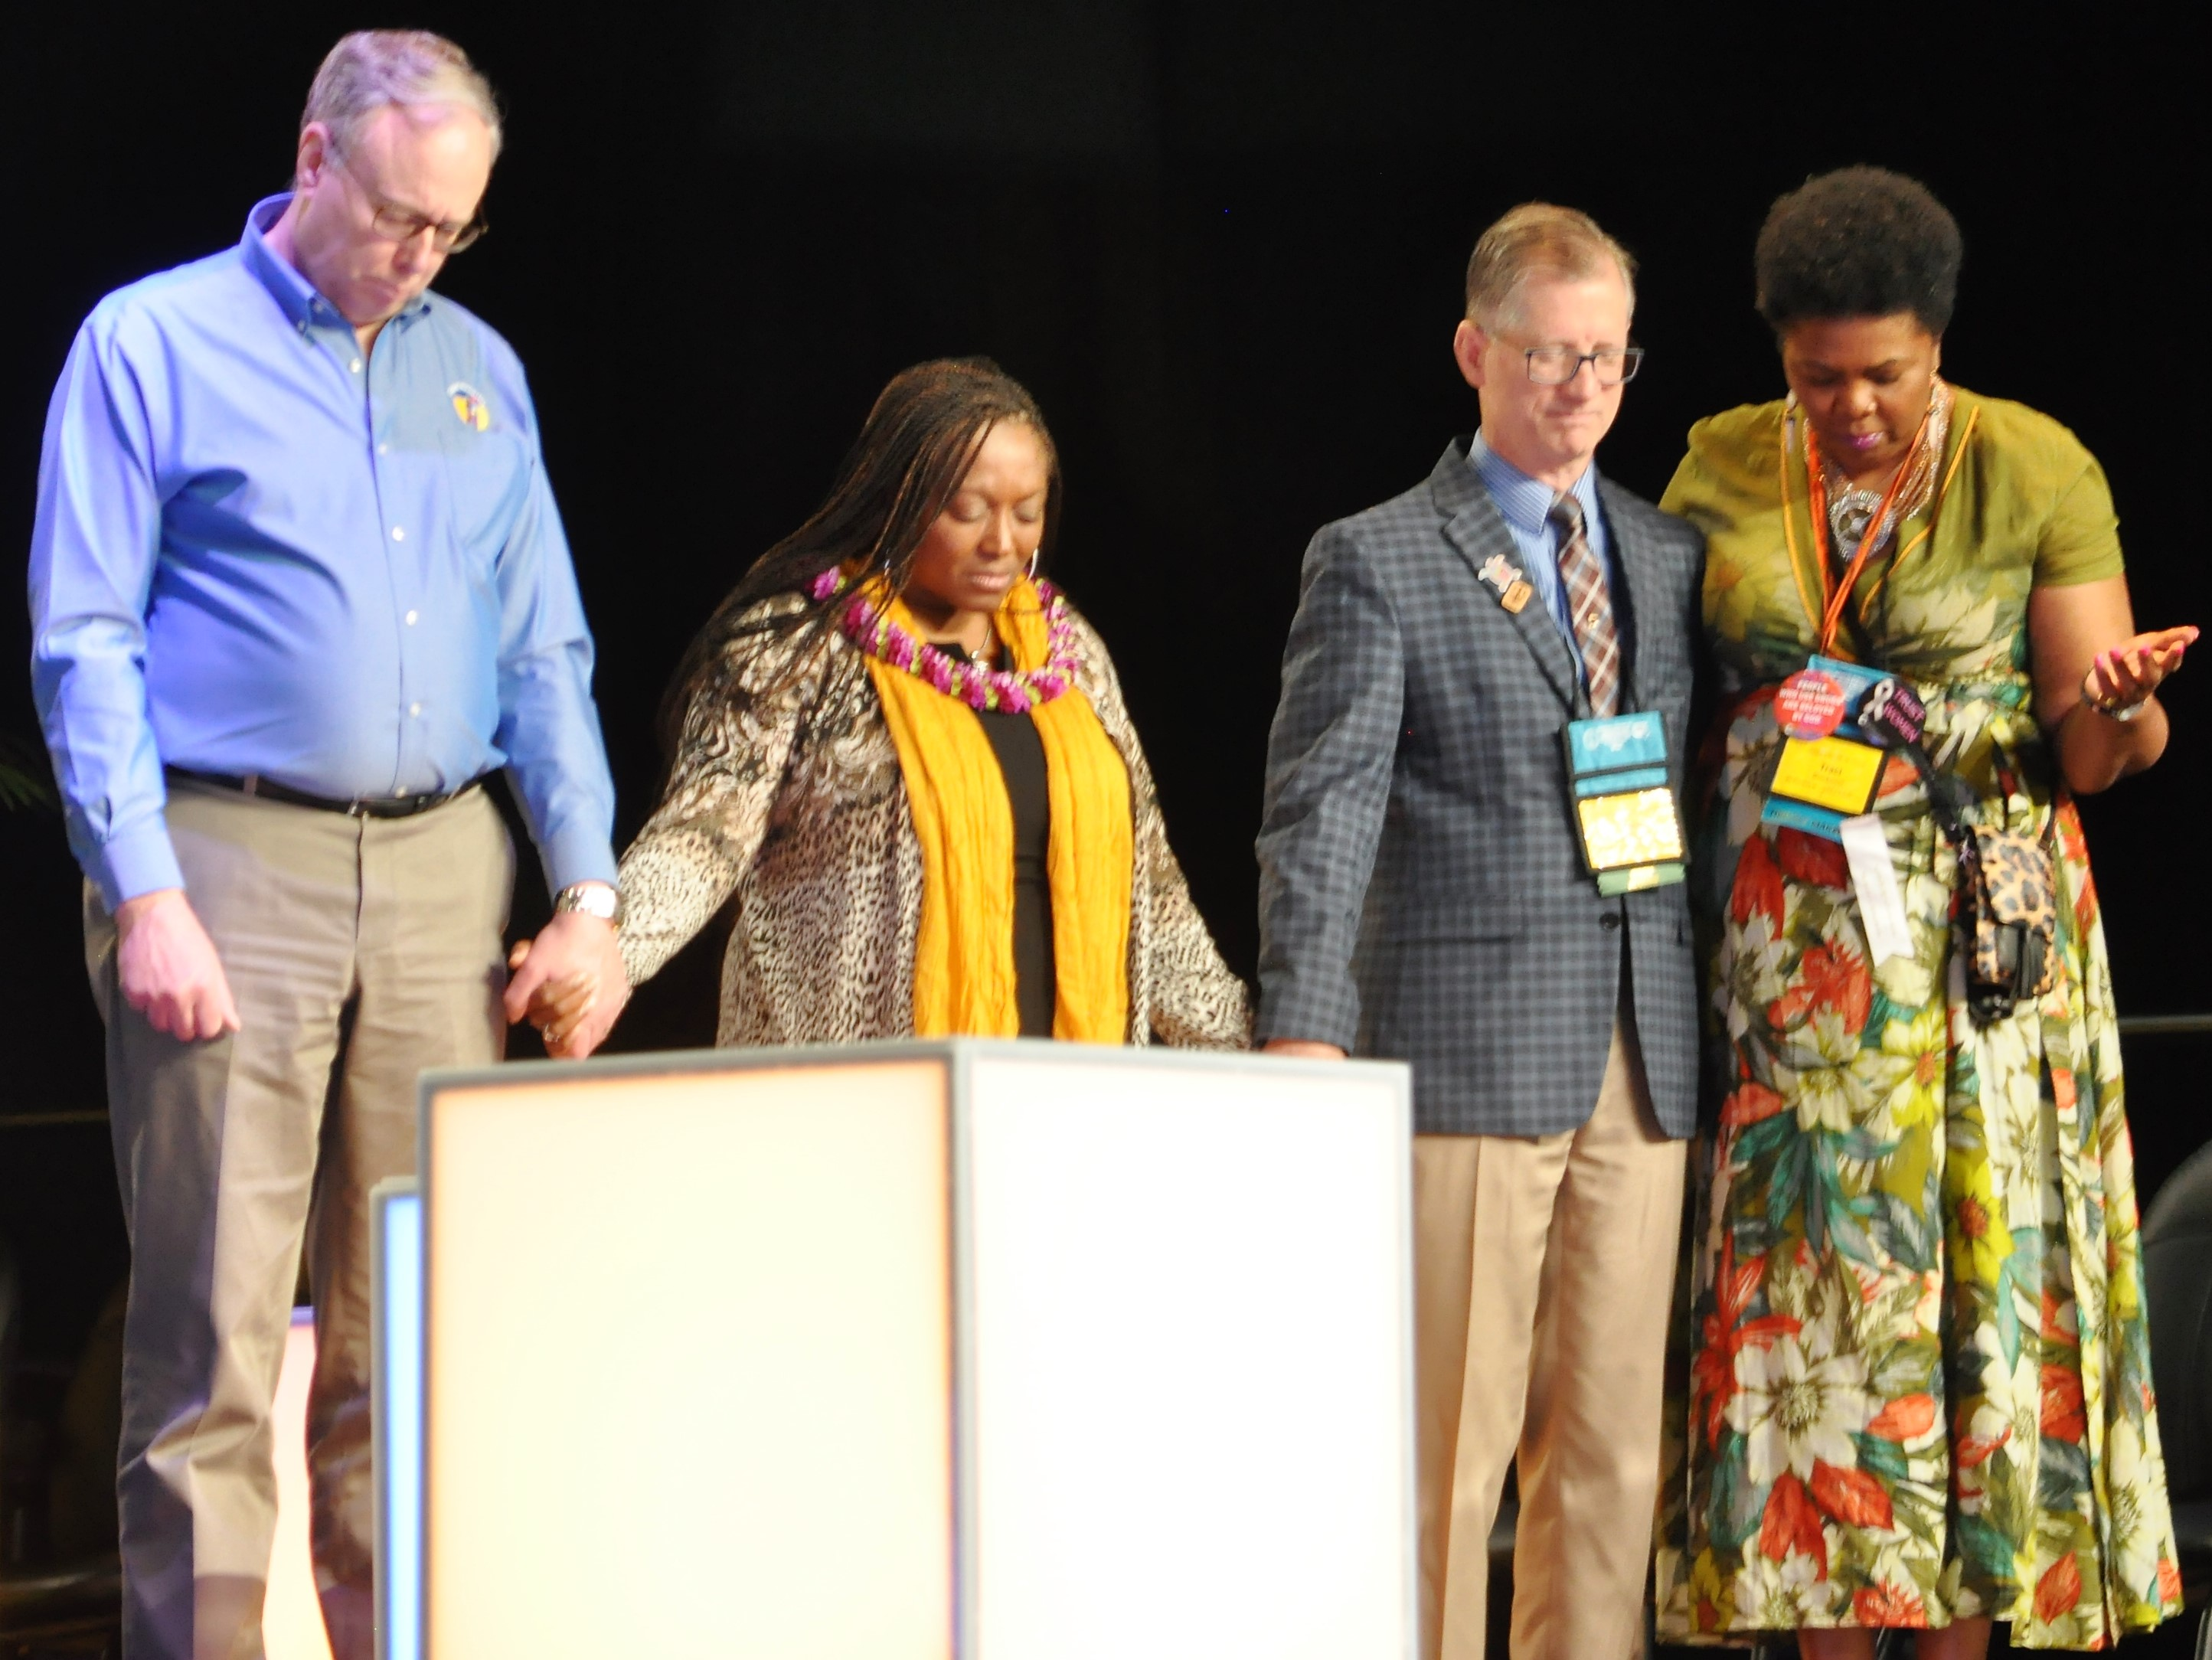 Four UCC officers at General Synod, 6/24/19